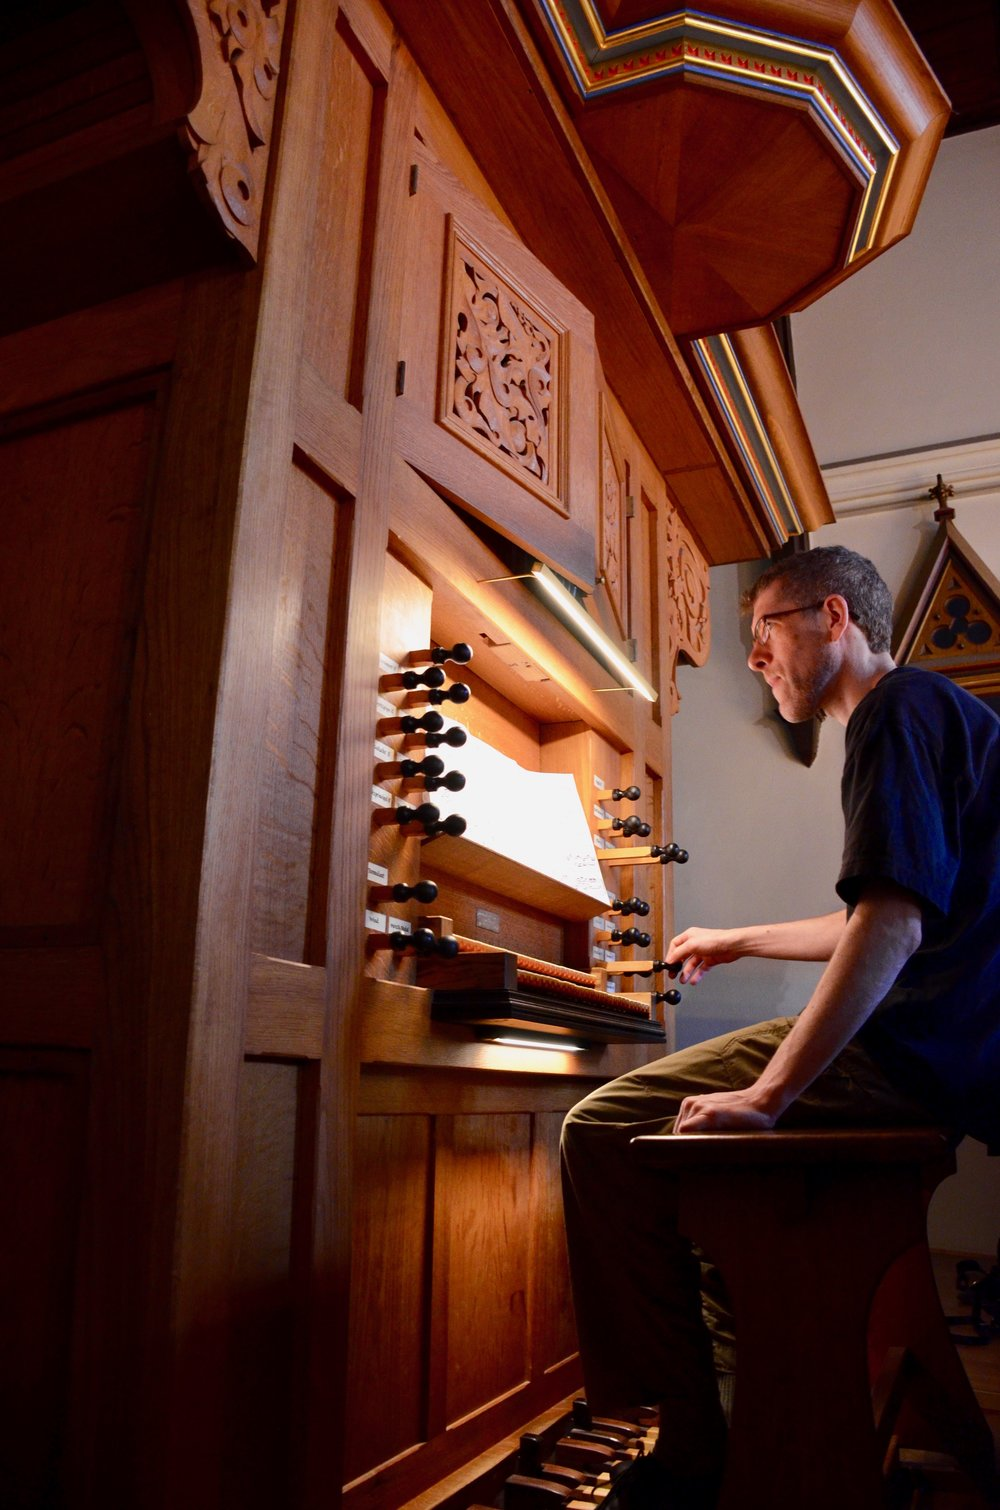 Chris Porter plays the 1992 Brombaugh organ, Haga Church, Göteborg, Sweden.